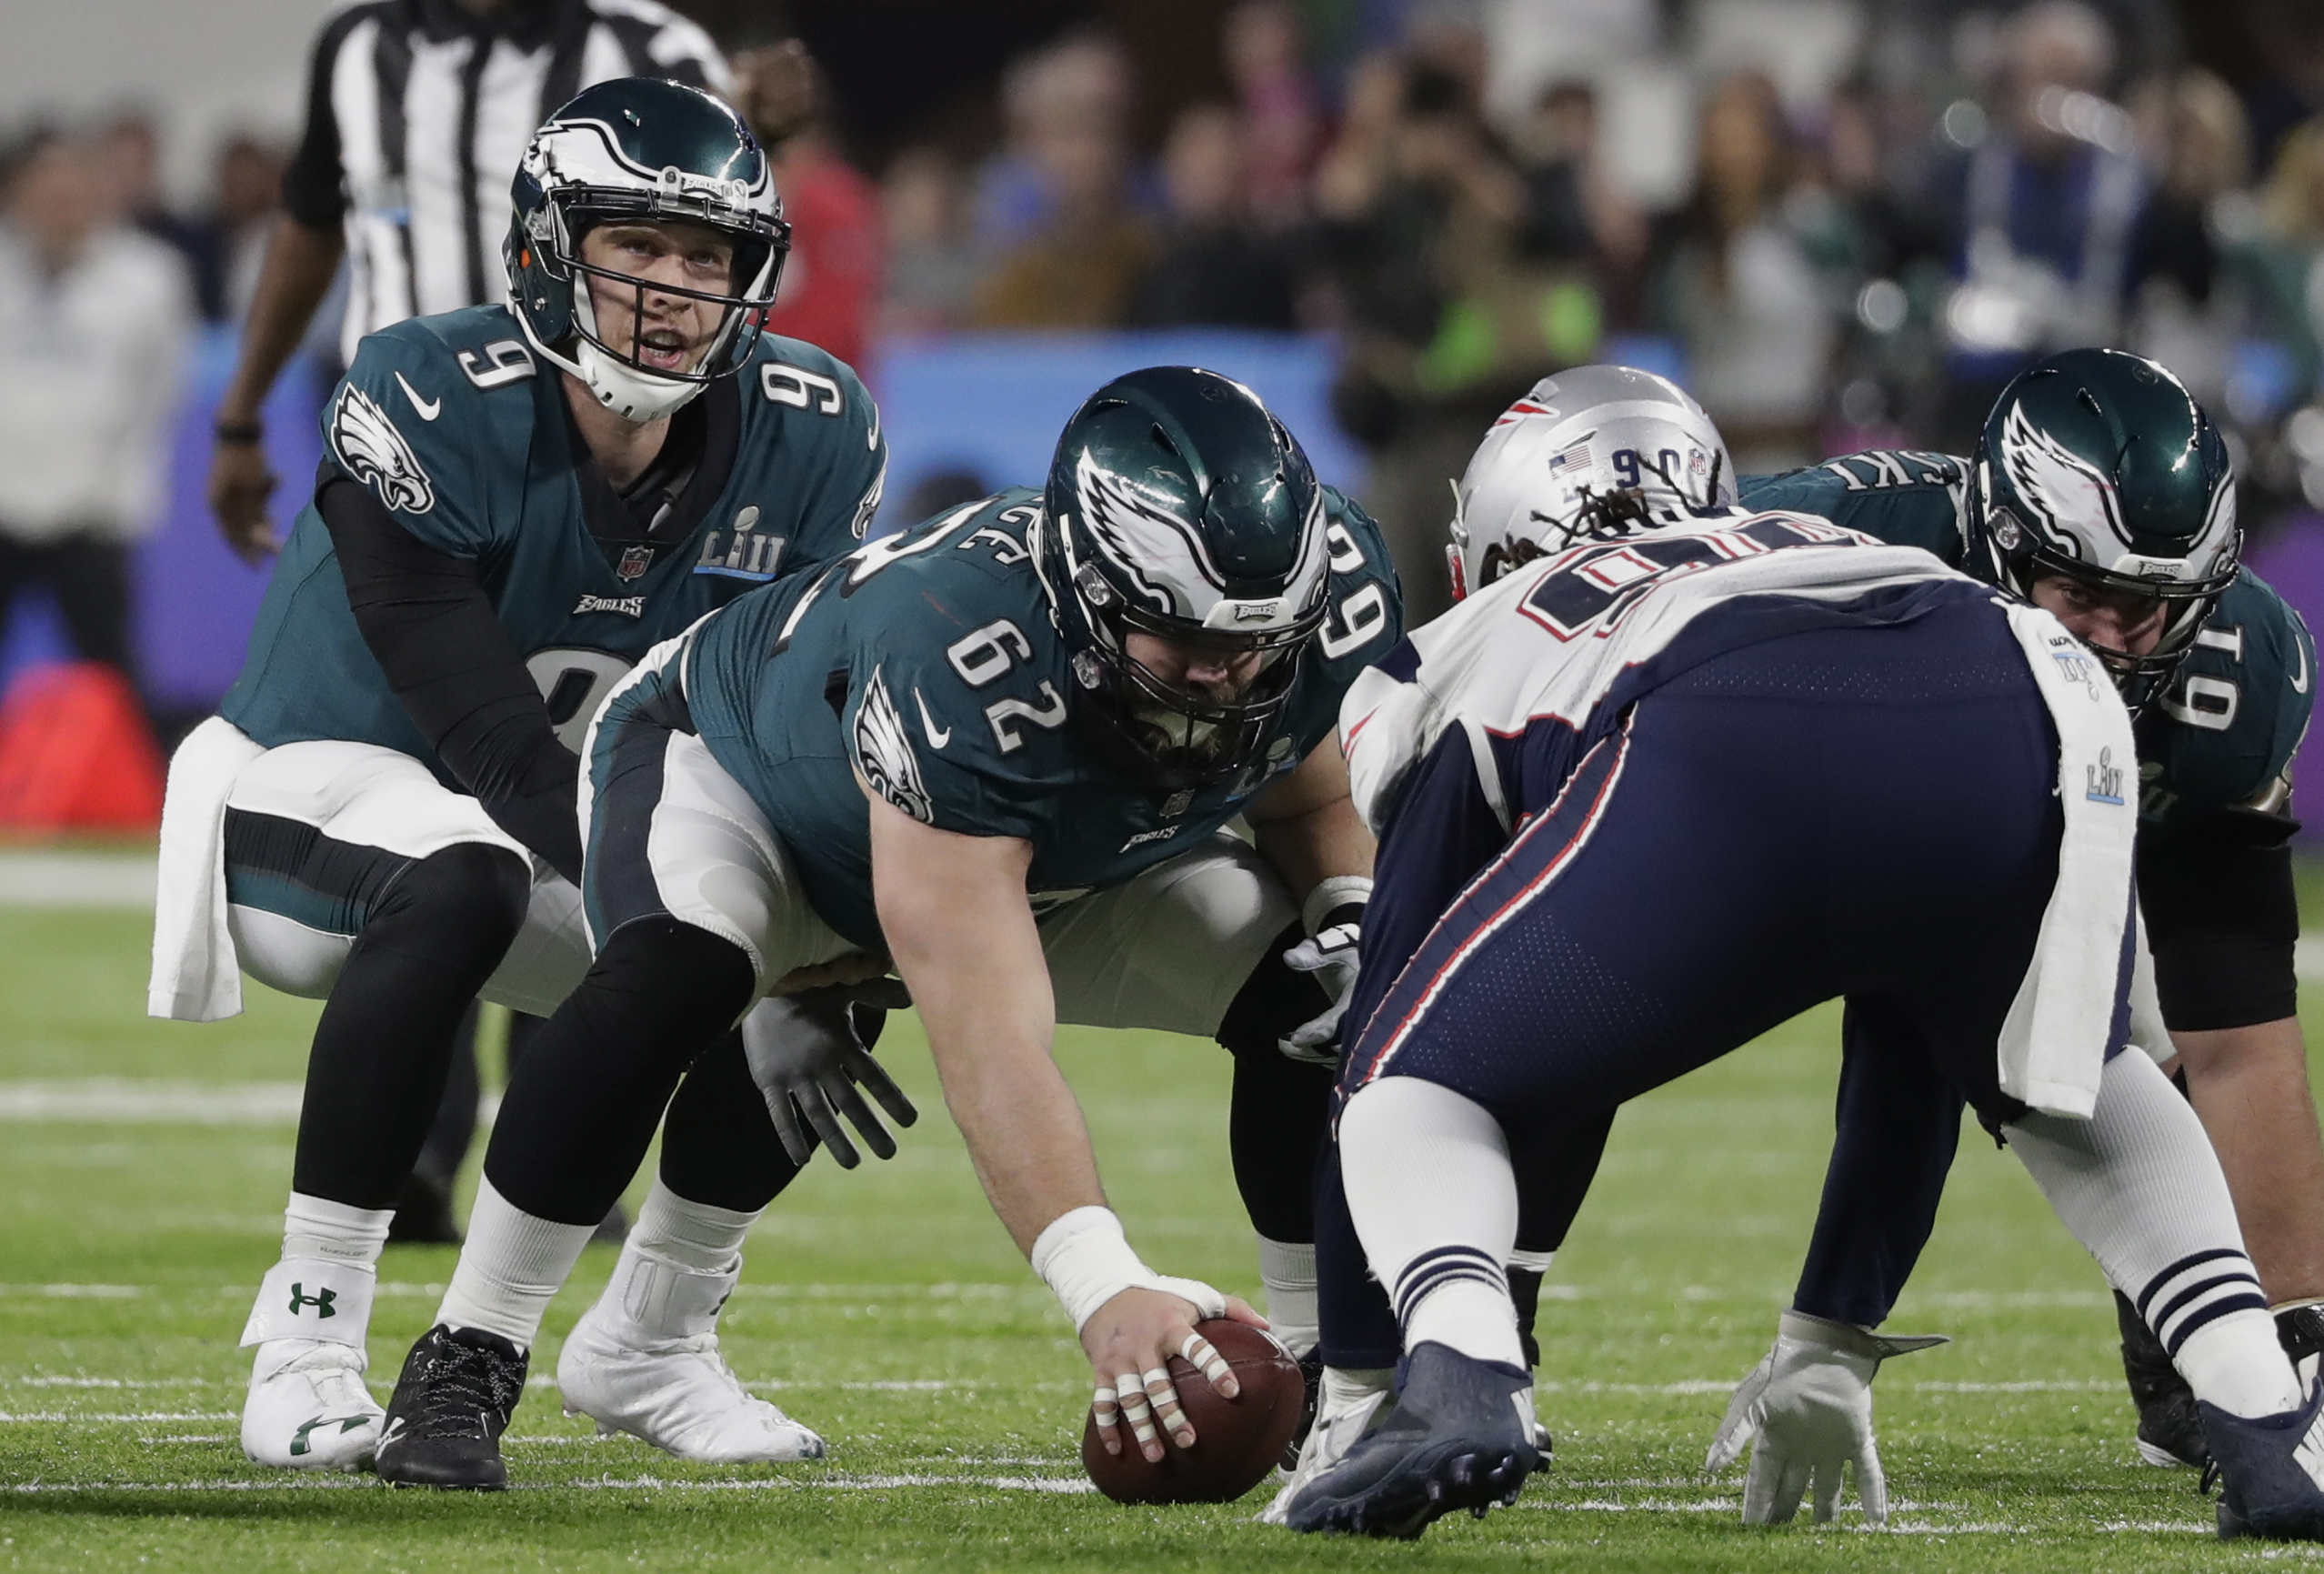 "<div class=""meta image-caption""><div class=""origin-logo origin-image ap""><span>AP</span></div><span class=""caption-text"">Philadelphia Eagles quarterback Nick Foles (9) calls a play, during the second half of the NFL Super Bowl 52 football game. (AP Photo/Tony Gutierrez)</span></div>"